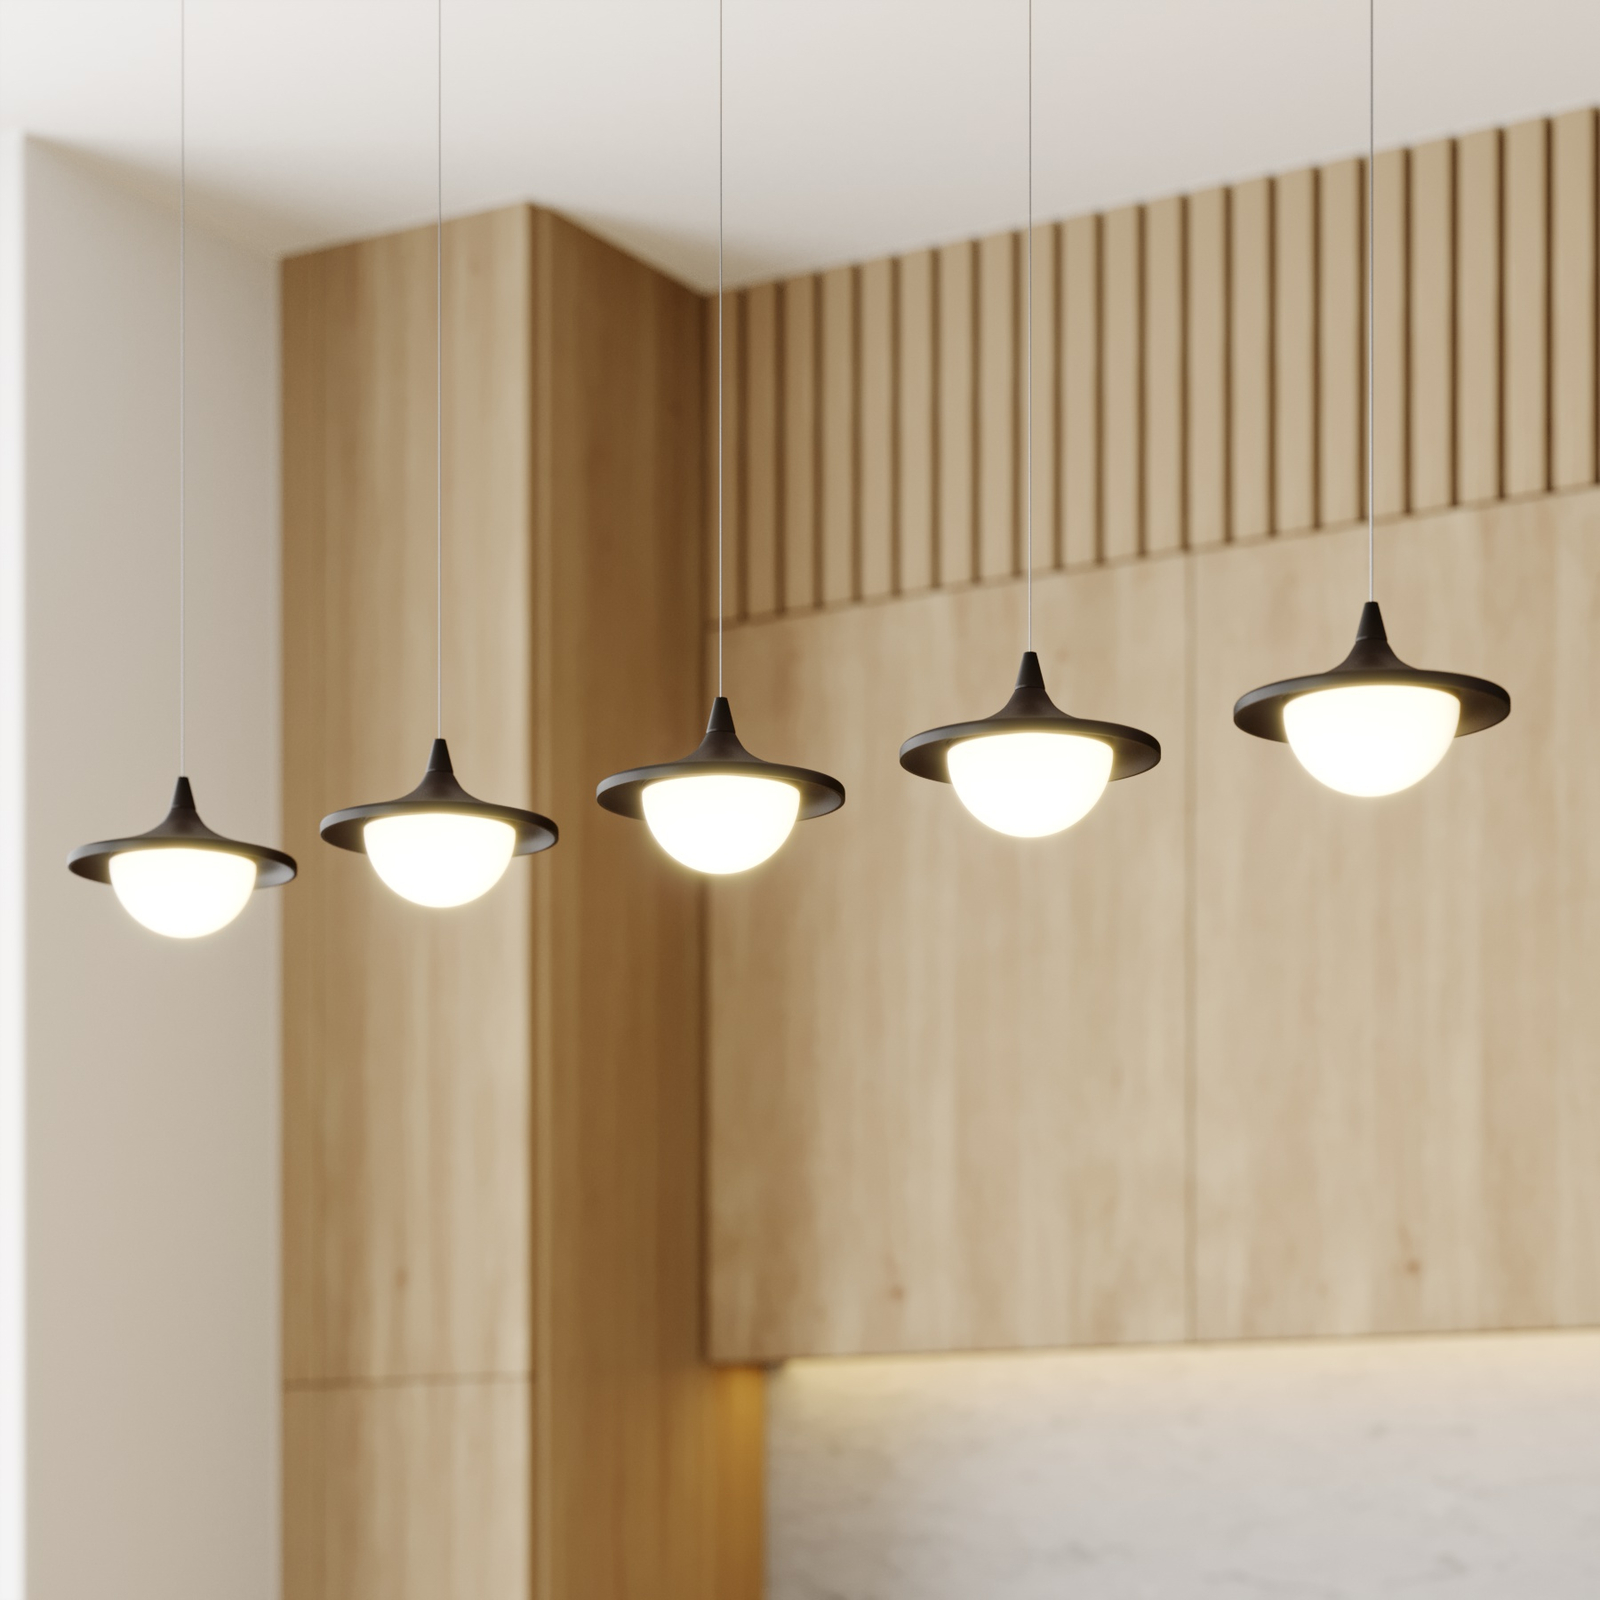 Lucande Tamsi suspension LED à 5 lampes, dimmable